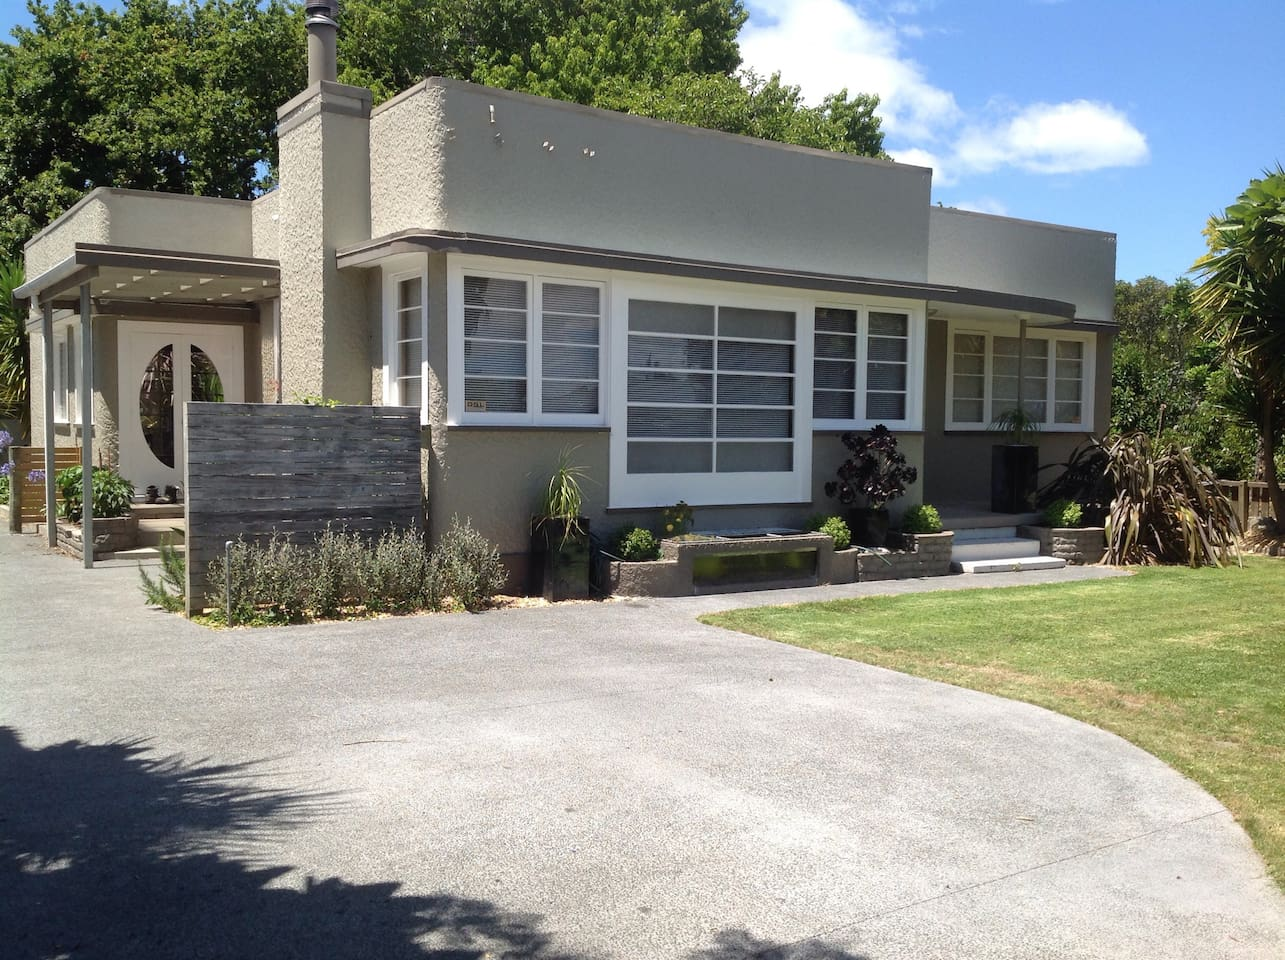 Our Art Deco home. Parking bay available at front and Studio located at the rear.